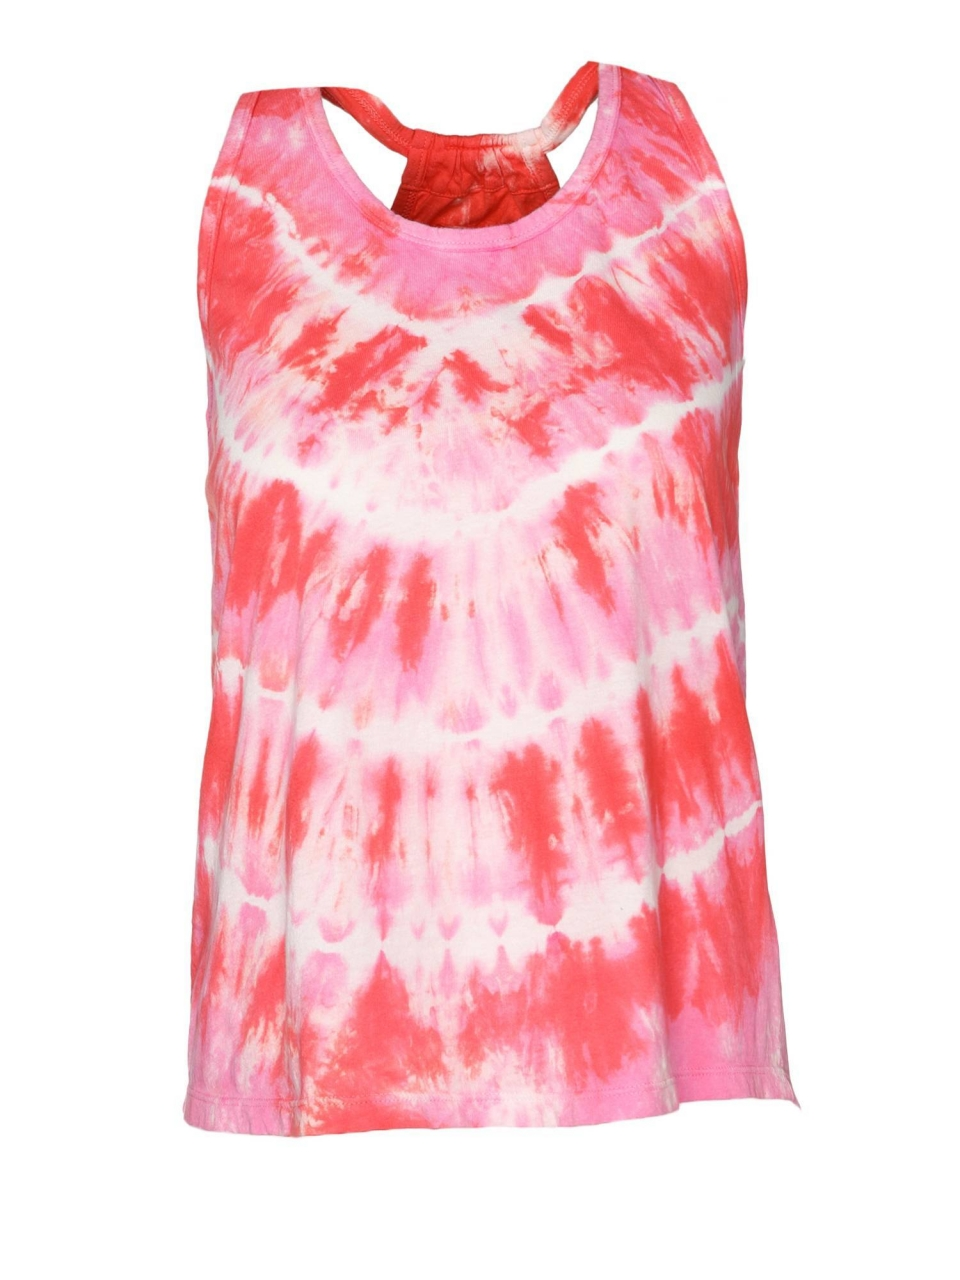 True Religion Top Tie Dye Rainbow